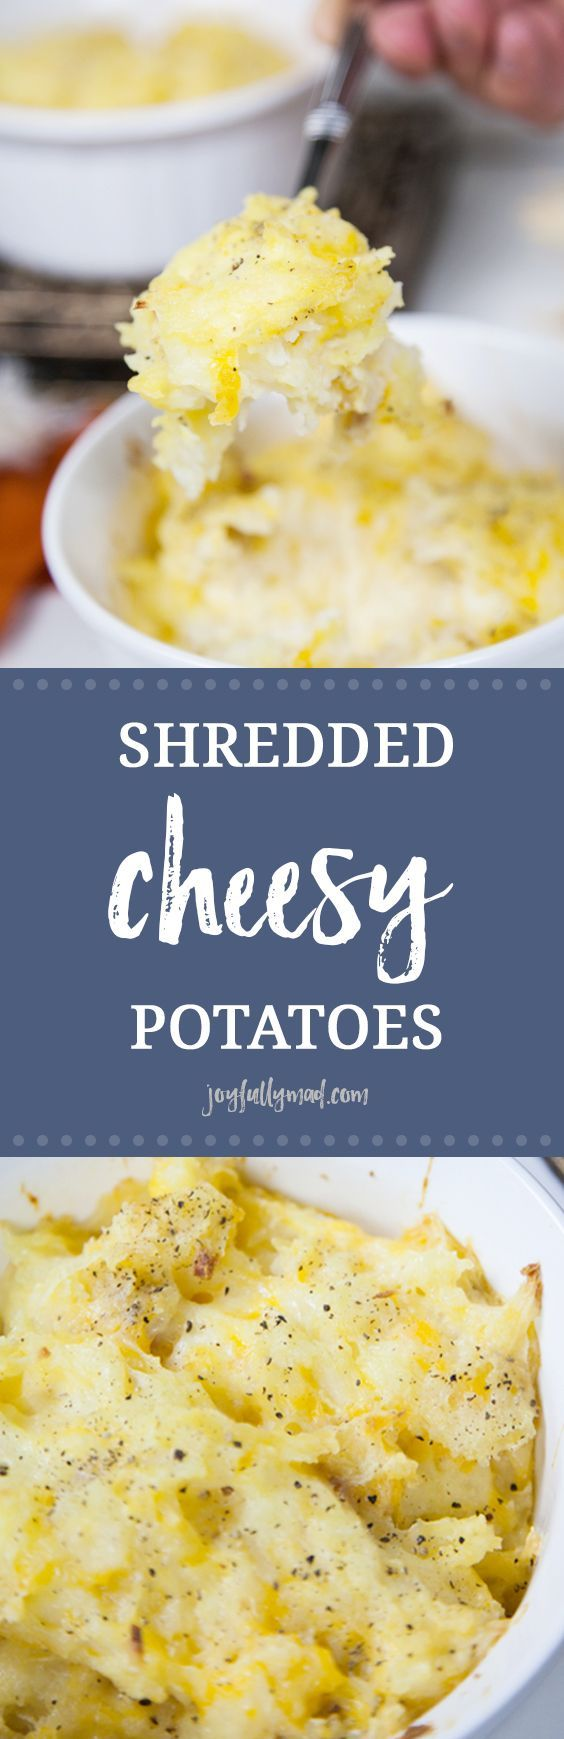 This recipe for ShreddedCheesy Potatoes is the perfect side dish for all of your holiday parties and family get togethers! These shredded cheesy potatoes are the perfect mashed potato alternative for Easter or just because. The potatoes are cooked to perfection then shredded by hand and mixed with sour cream, cream of chicken soup and lots of shredded cheese for a side dish that is filly with yumminess!